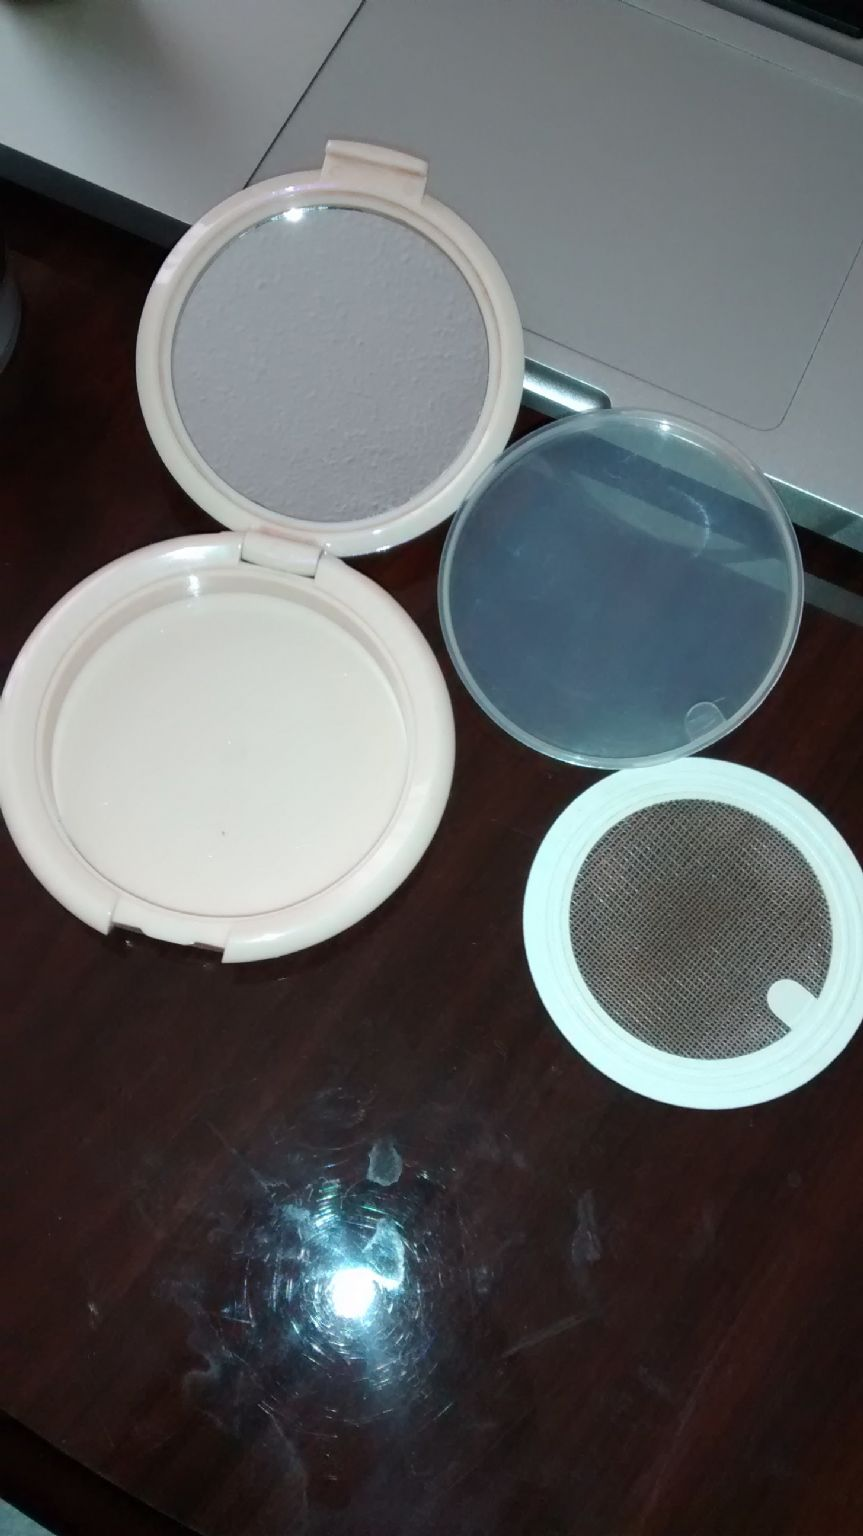 Mac Cosmetics Prep Prime Transparent Finishing Powder